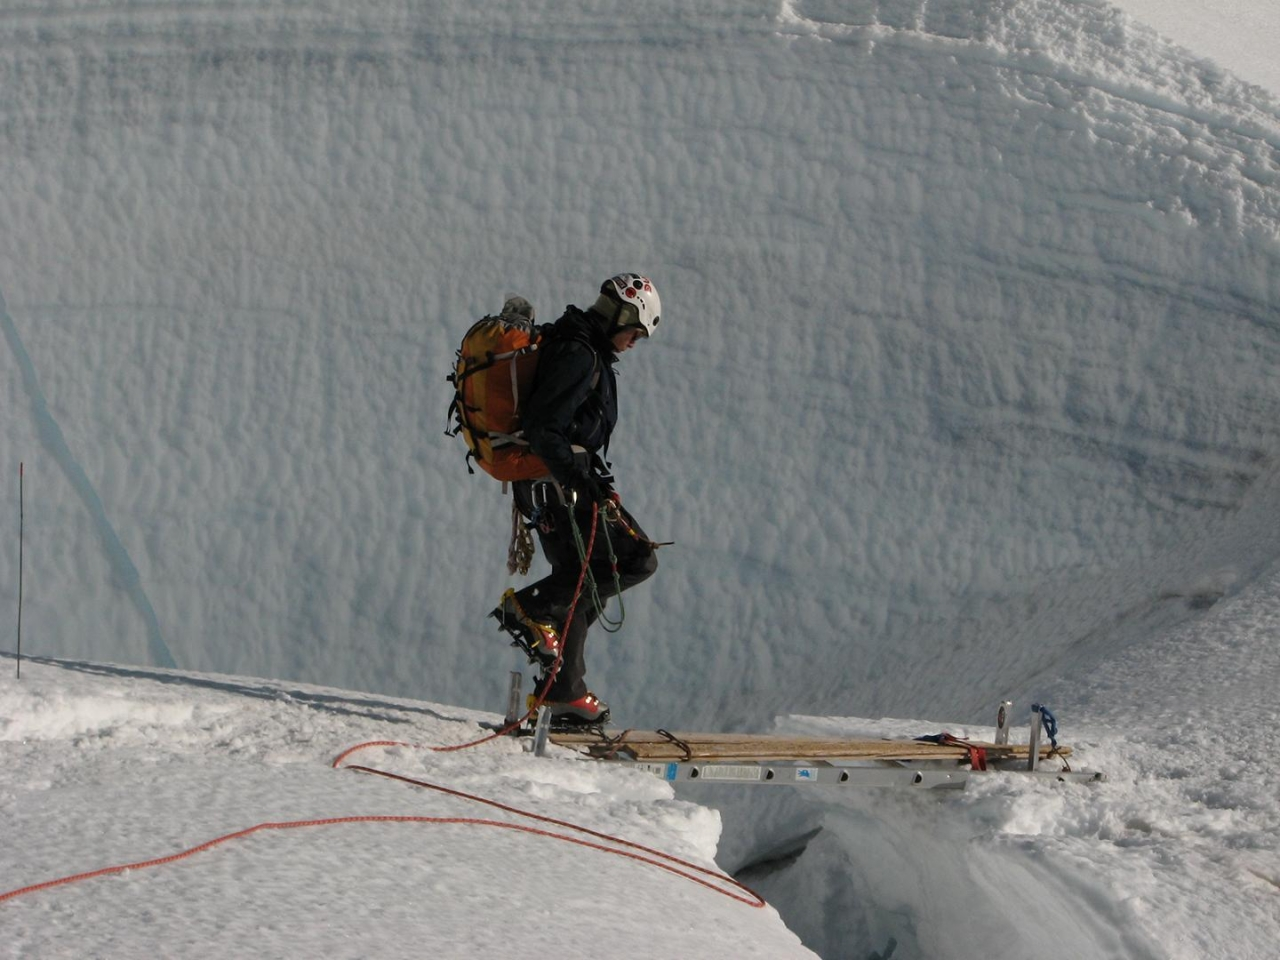 A picture from Disapointment Cleaver, Mt Rainier by MSR / Mountain Safety Research